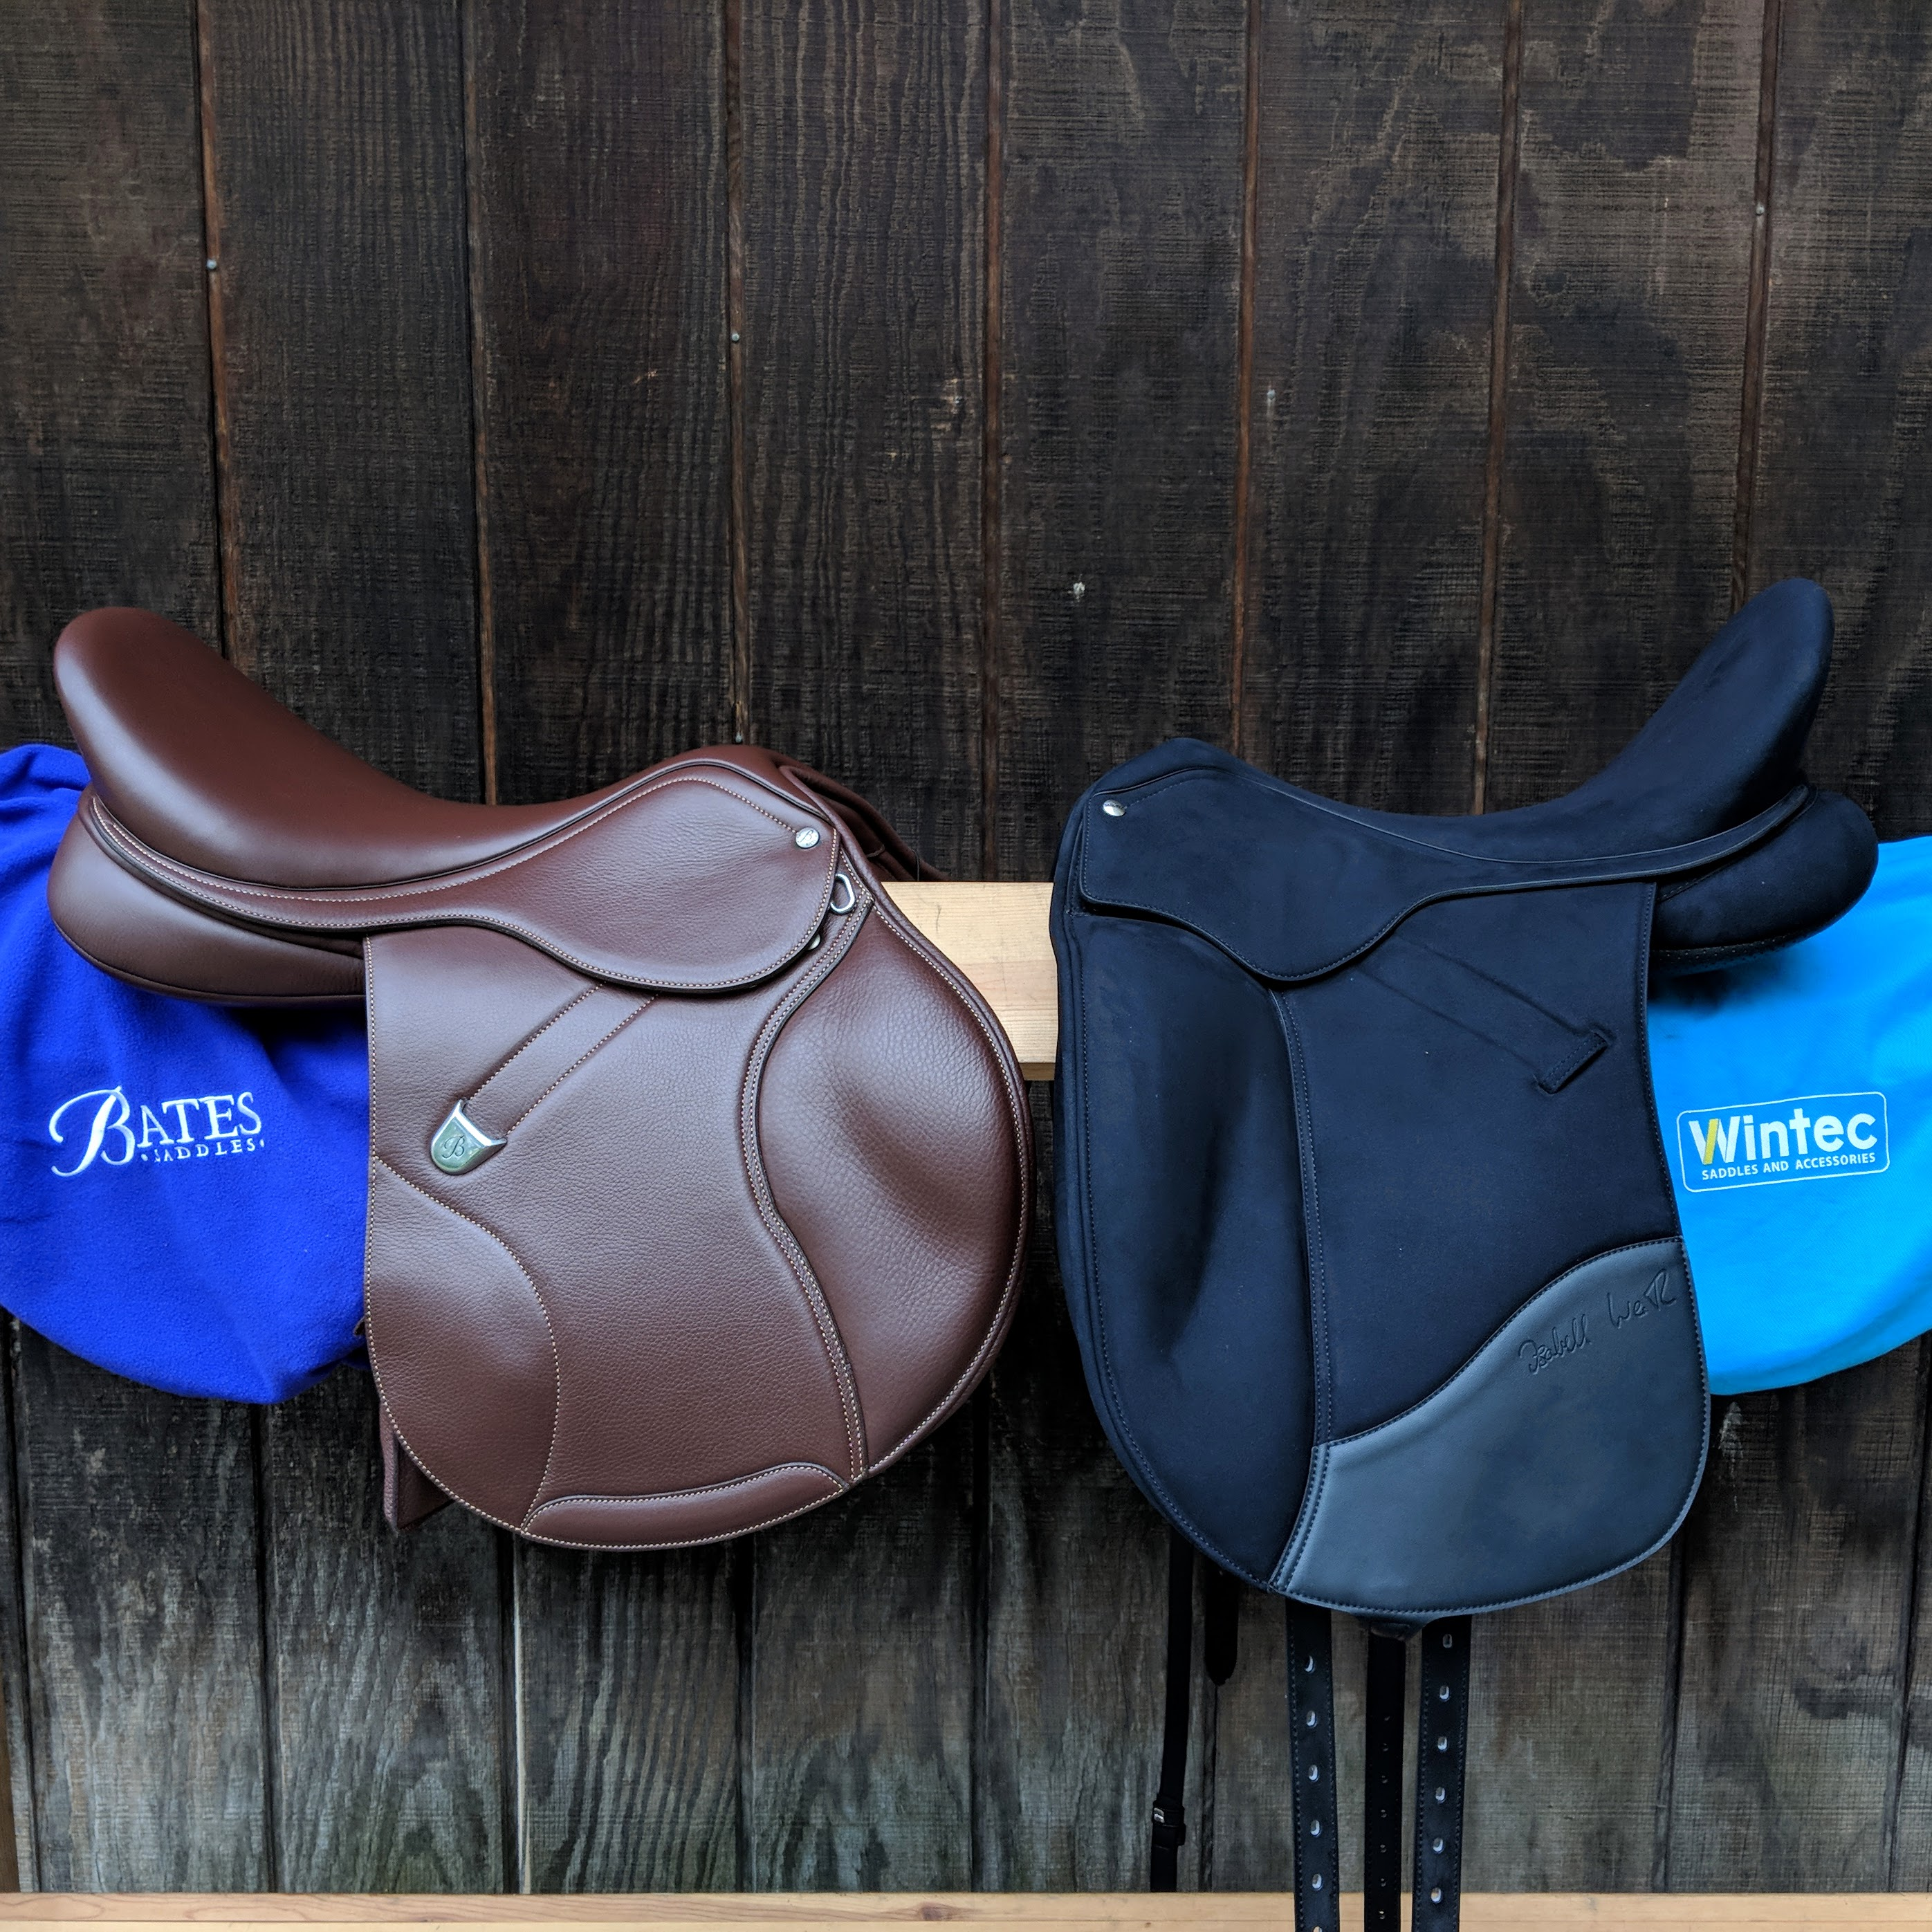 3 Reasons to Love Interchangeable Gullet Plate Saddles - Dutchess